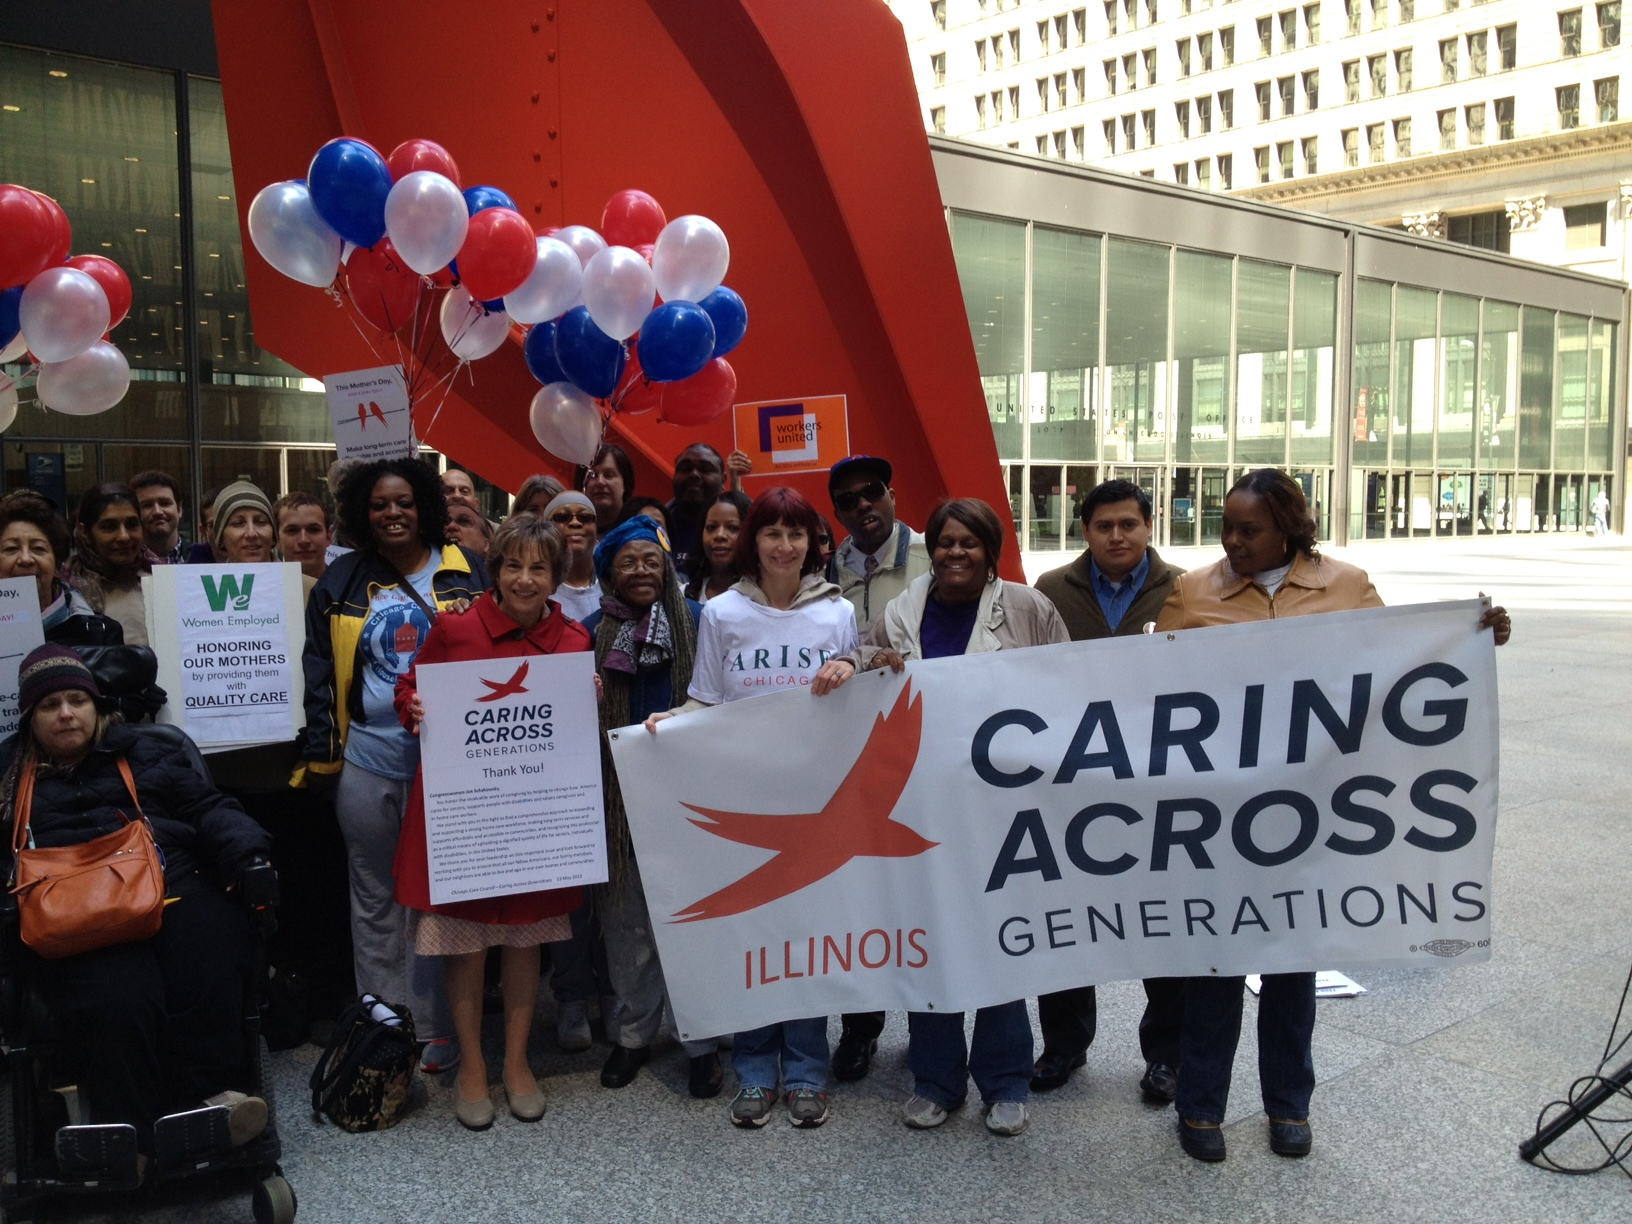 Caring_Across_Generations_Rally_with_Cong_Jan_Schakowsky_05_13_13